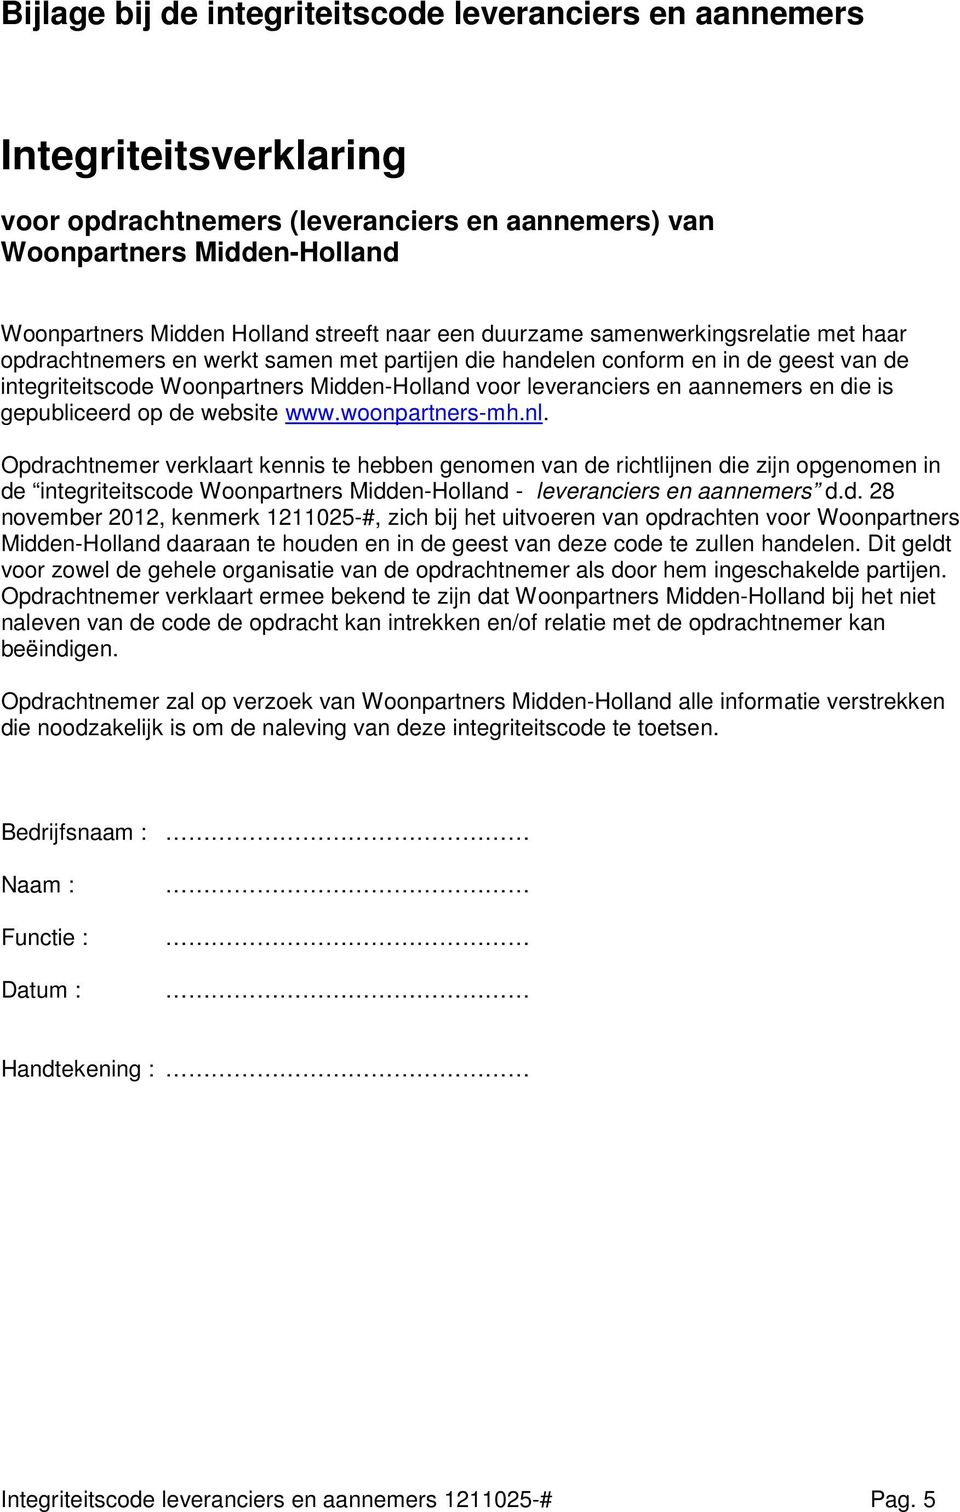 website www.woonpartners-mh.nl. Opdr